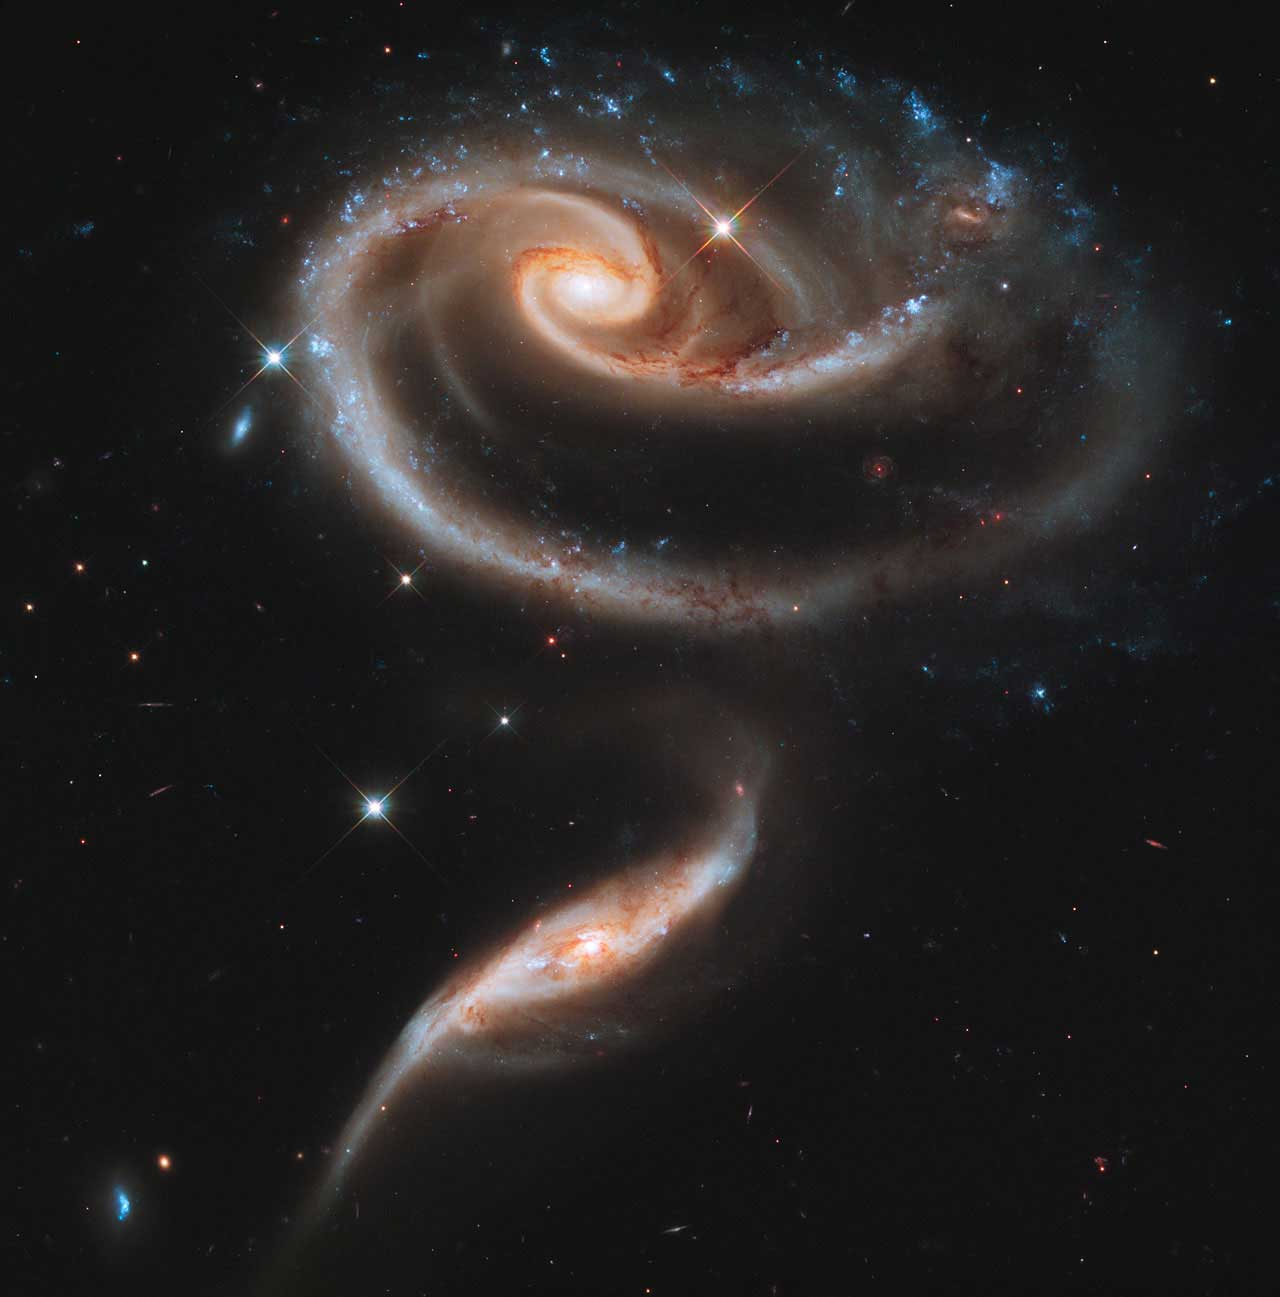 <strong>Interacting Galaxies Arp 273</strong>:                                                                      A pair of interacting galaxies called Arp 273.  The distorted shape of the larger of the two galaxies shows signs of tidal interactions with the smaller of the two. It is thought that the smaller galaxy has actually passed through the larger one.                                                                      <i>Image released on April 20, 2011</i>